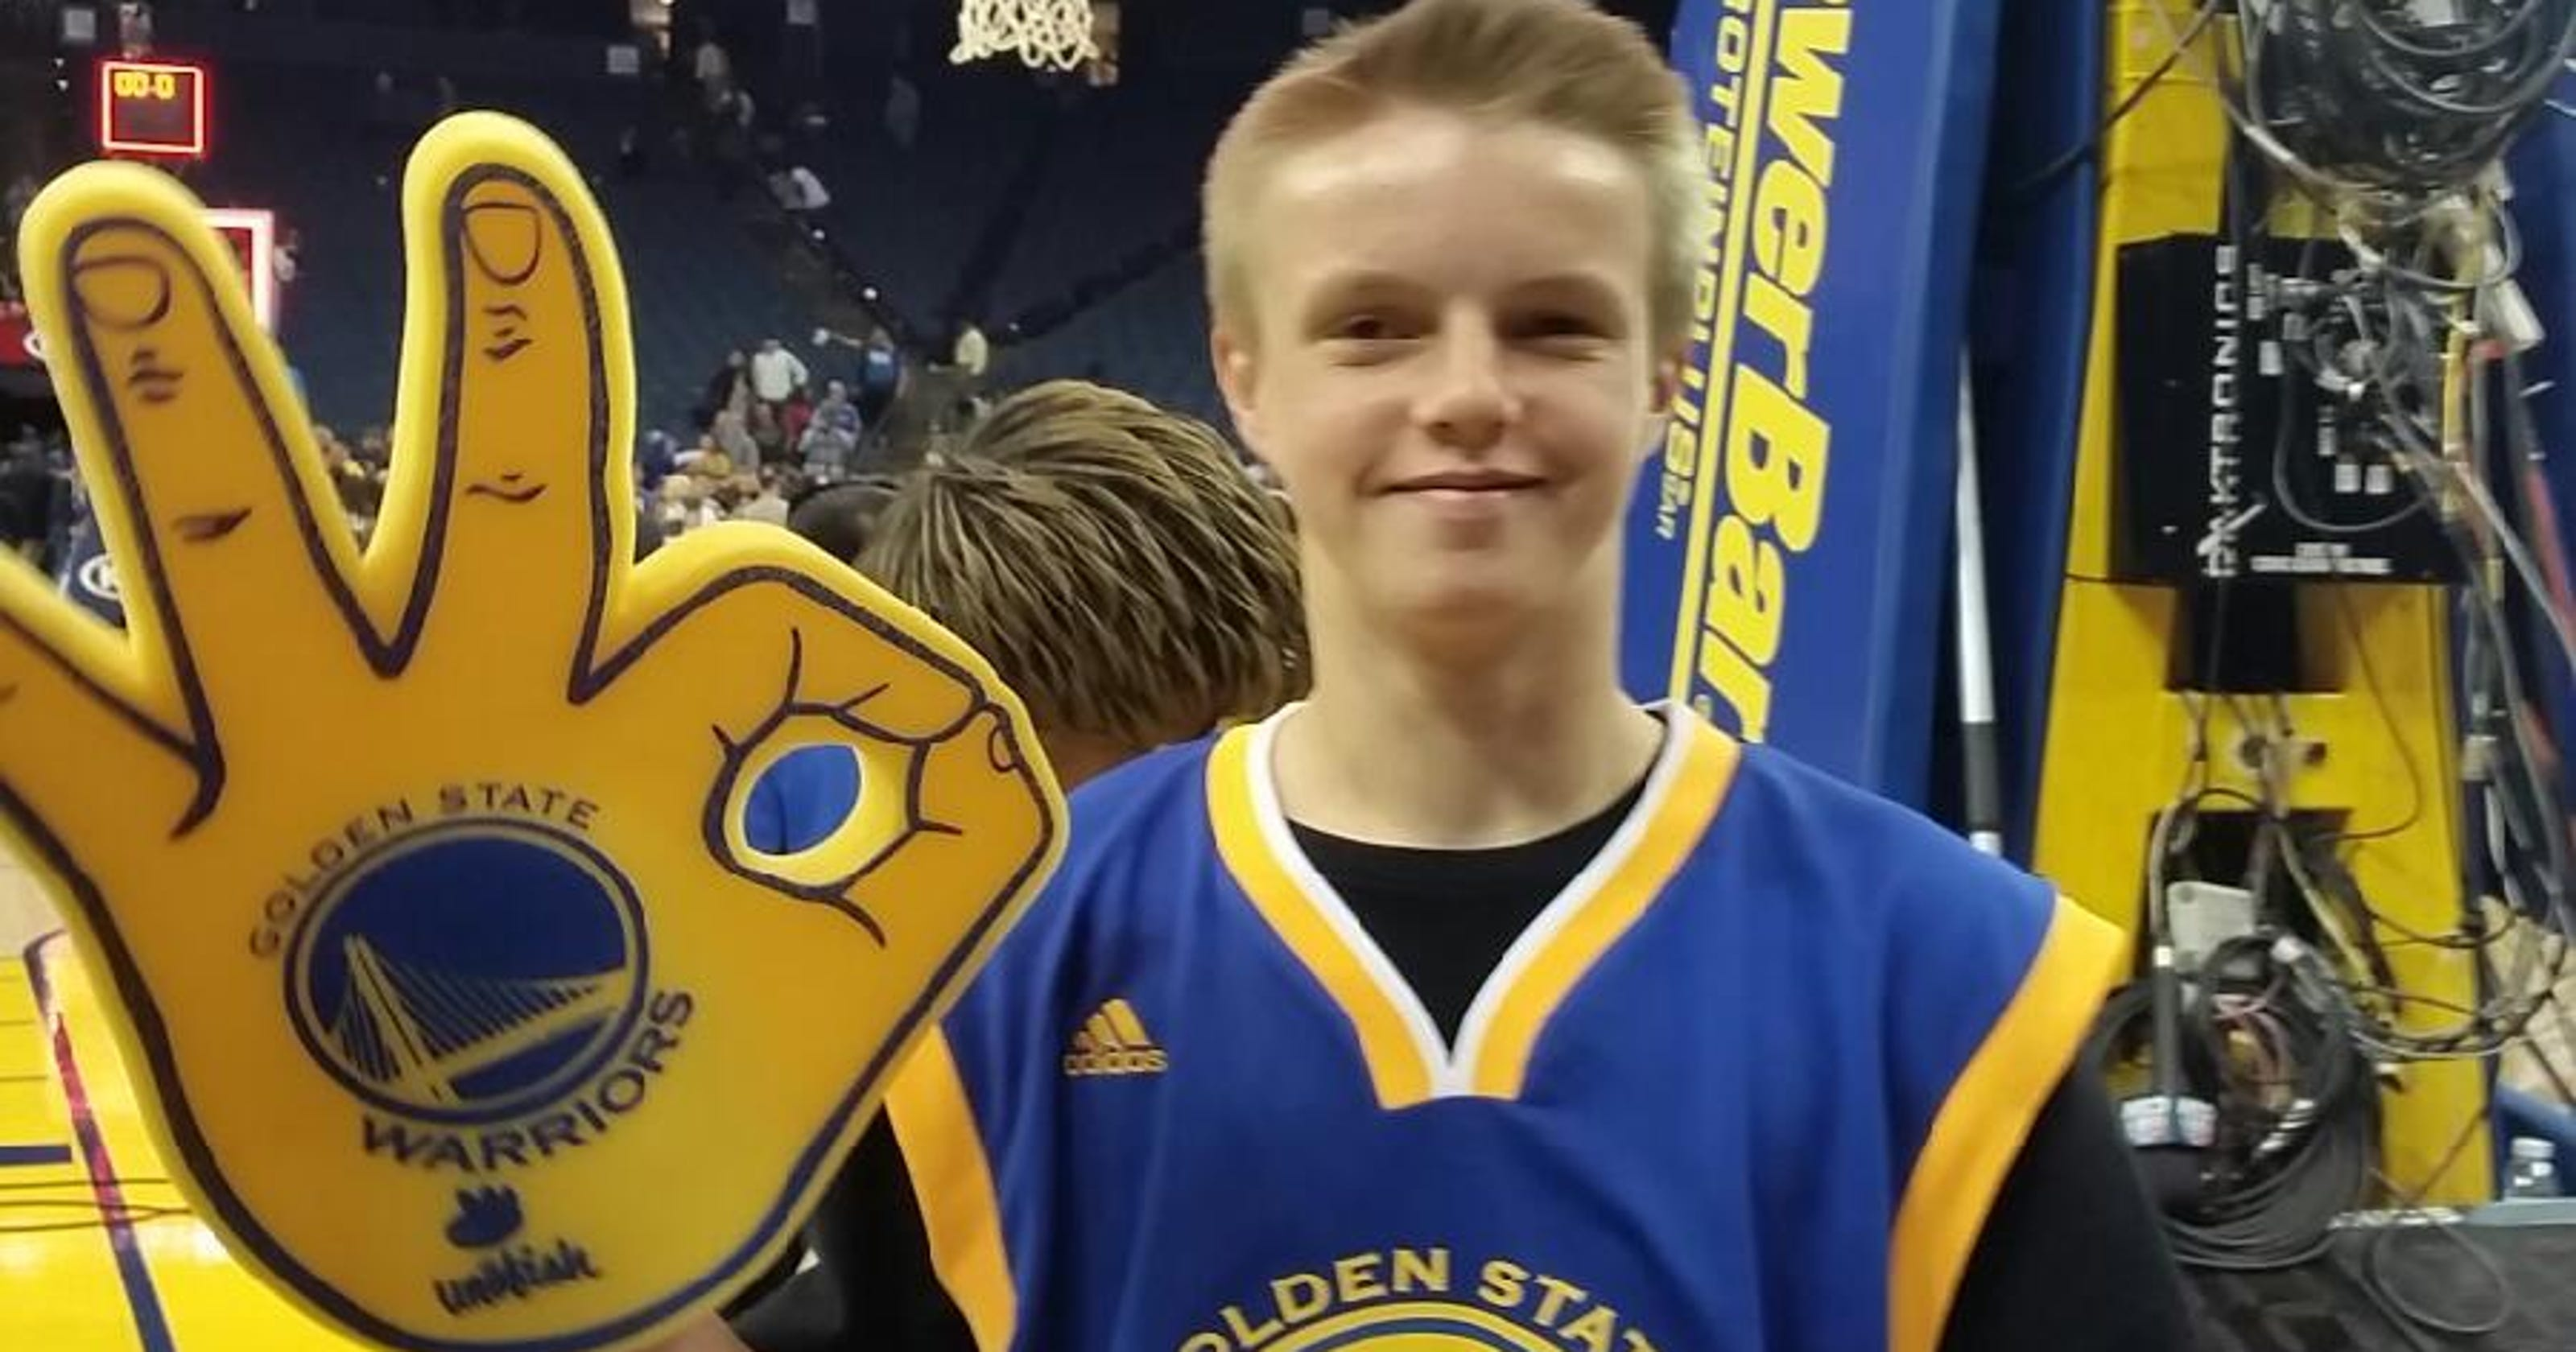 Harrison Barnes Helps An Iowa Boy After The Loss Of His Father